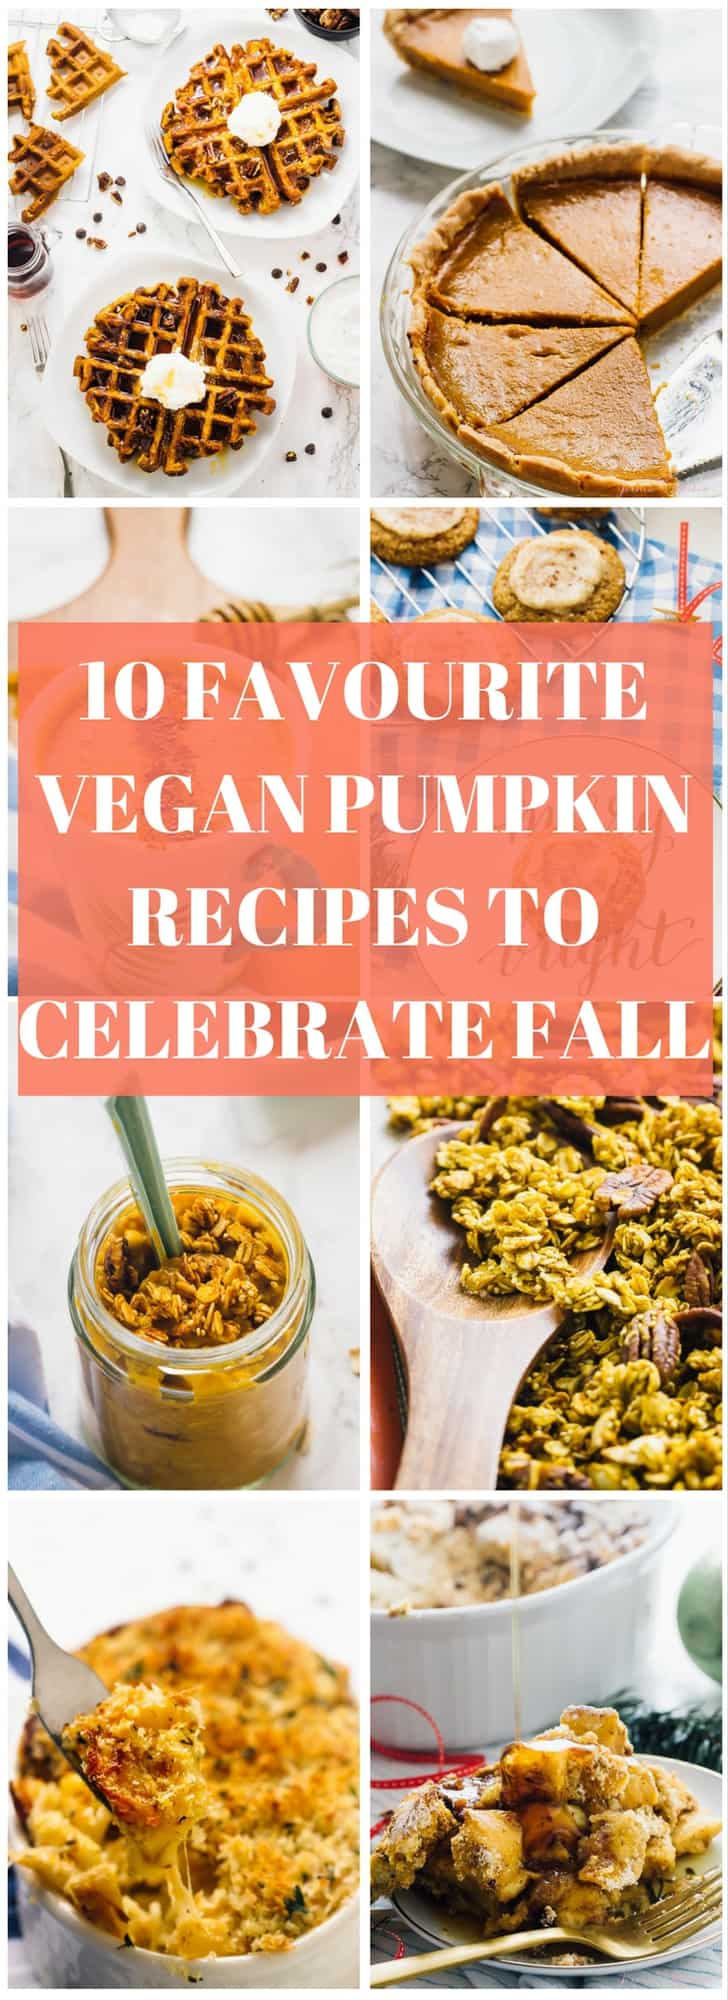 Happy Fall!! Here are 10 Favourite Vegan Pumpkin Recipes to Celebrate Fall right! They range from breakfasts to dinners to desserts and are all gluten free!